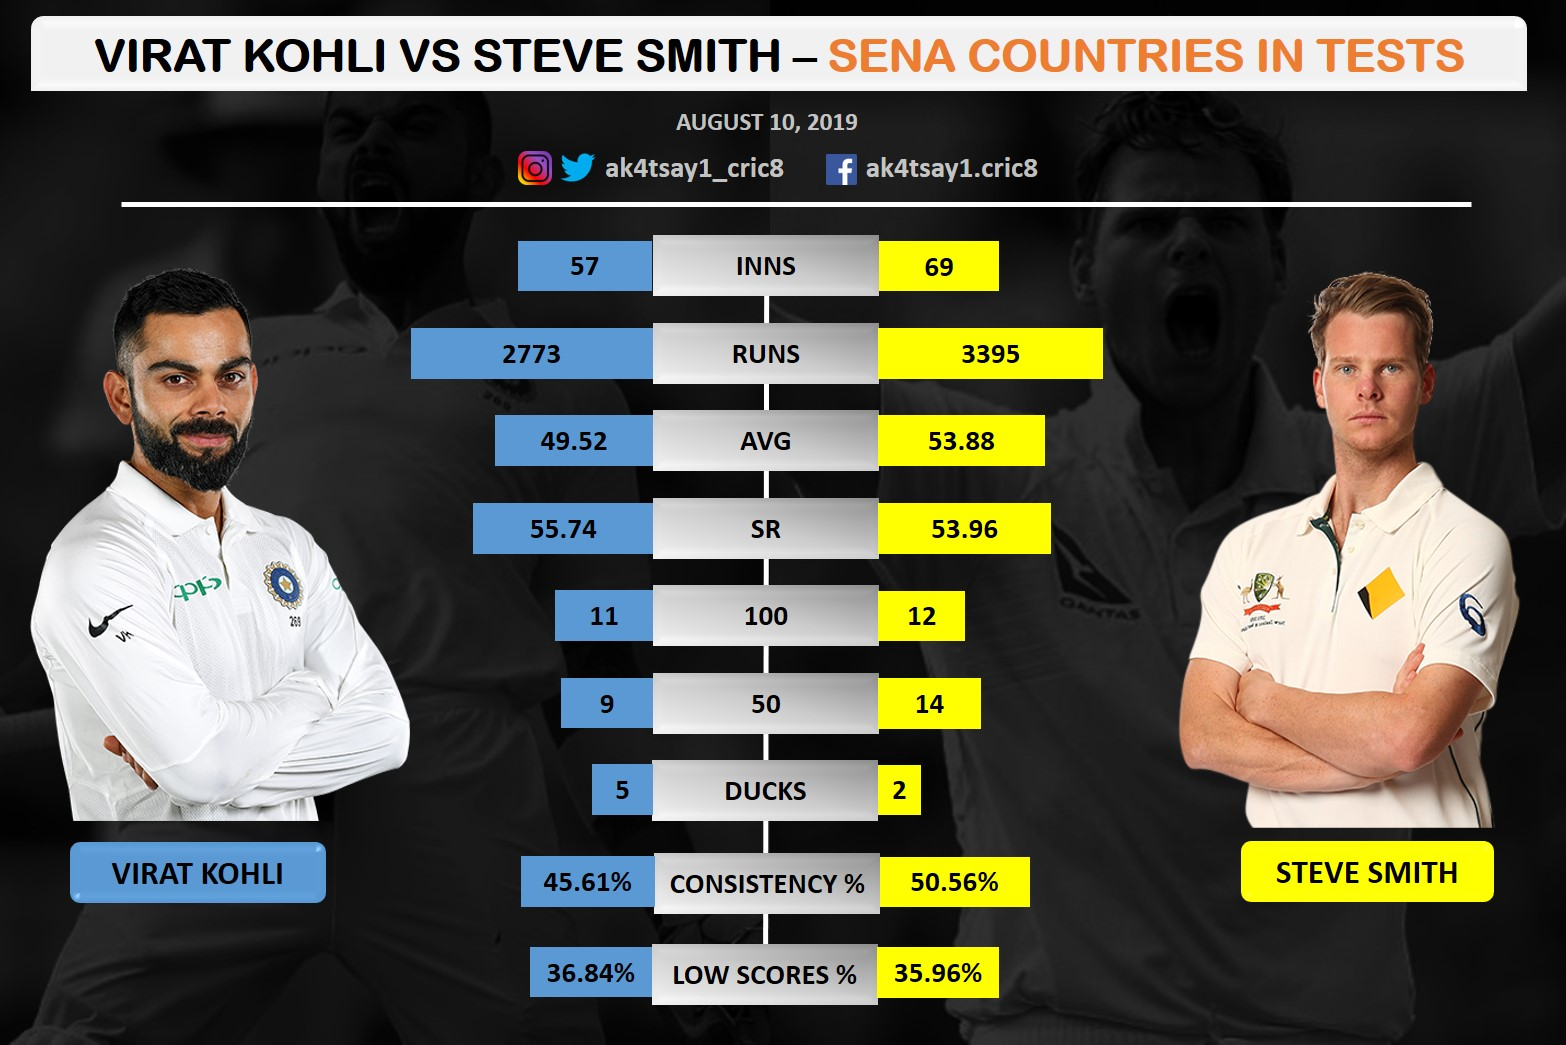 Virat Kohli vs Steve Smith in SENA countries in Tests